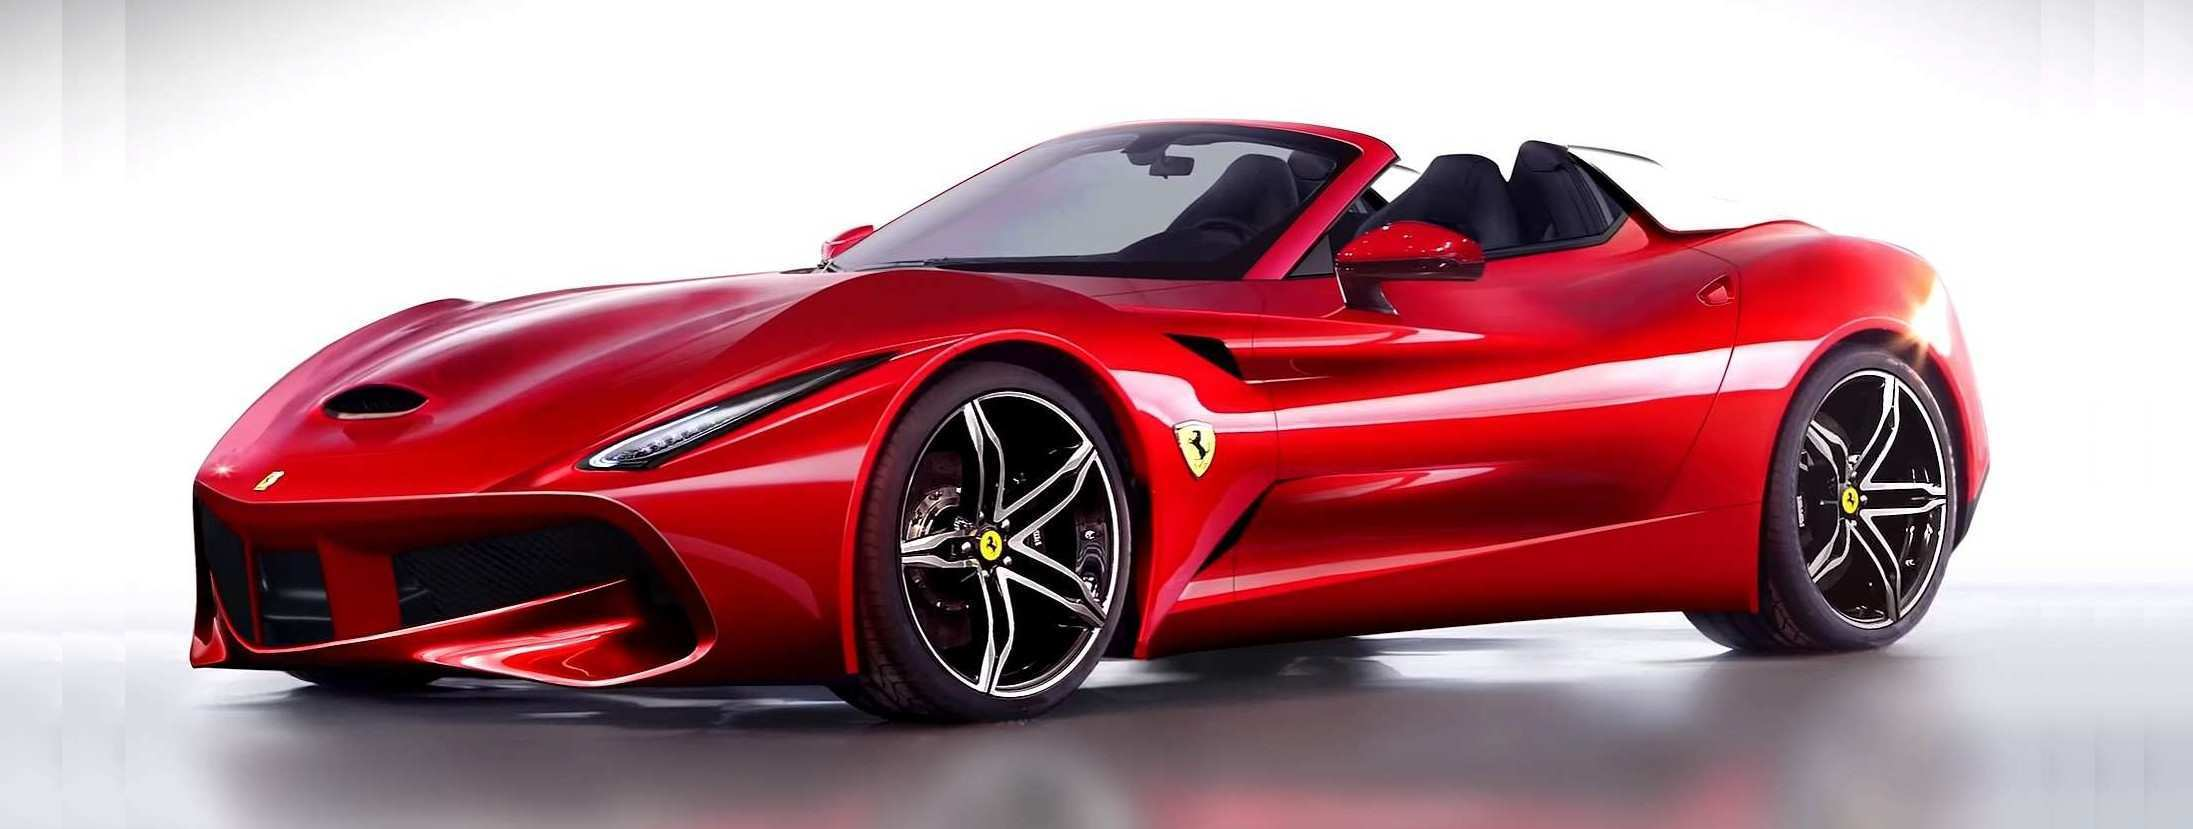 20 Concept of 2019 New Ferrari New Review with 2019 New Ferrari